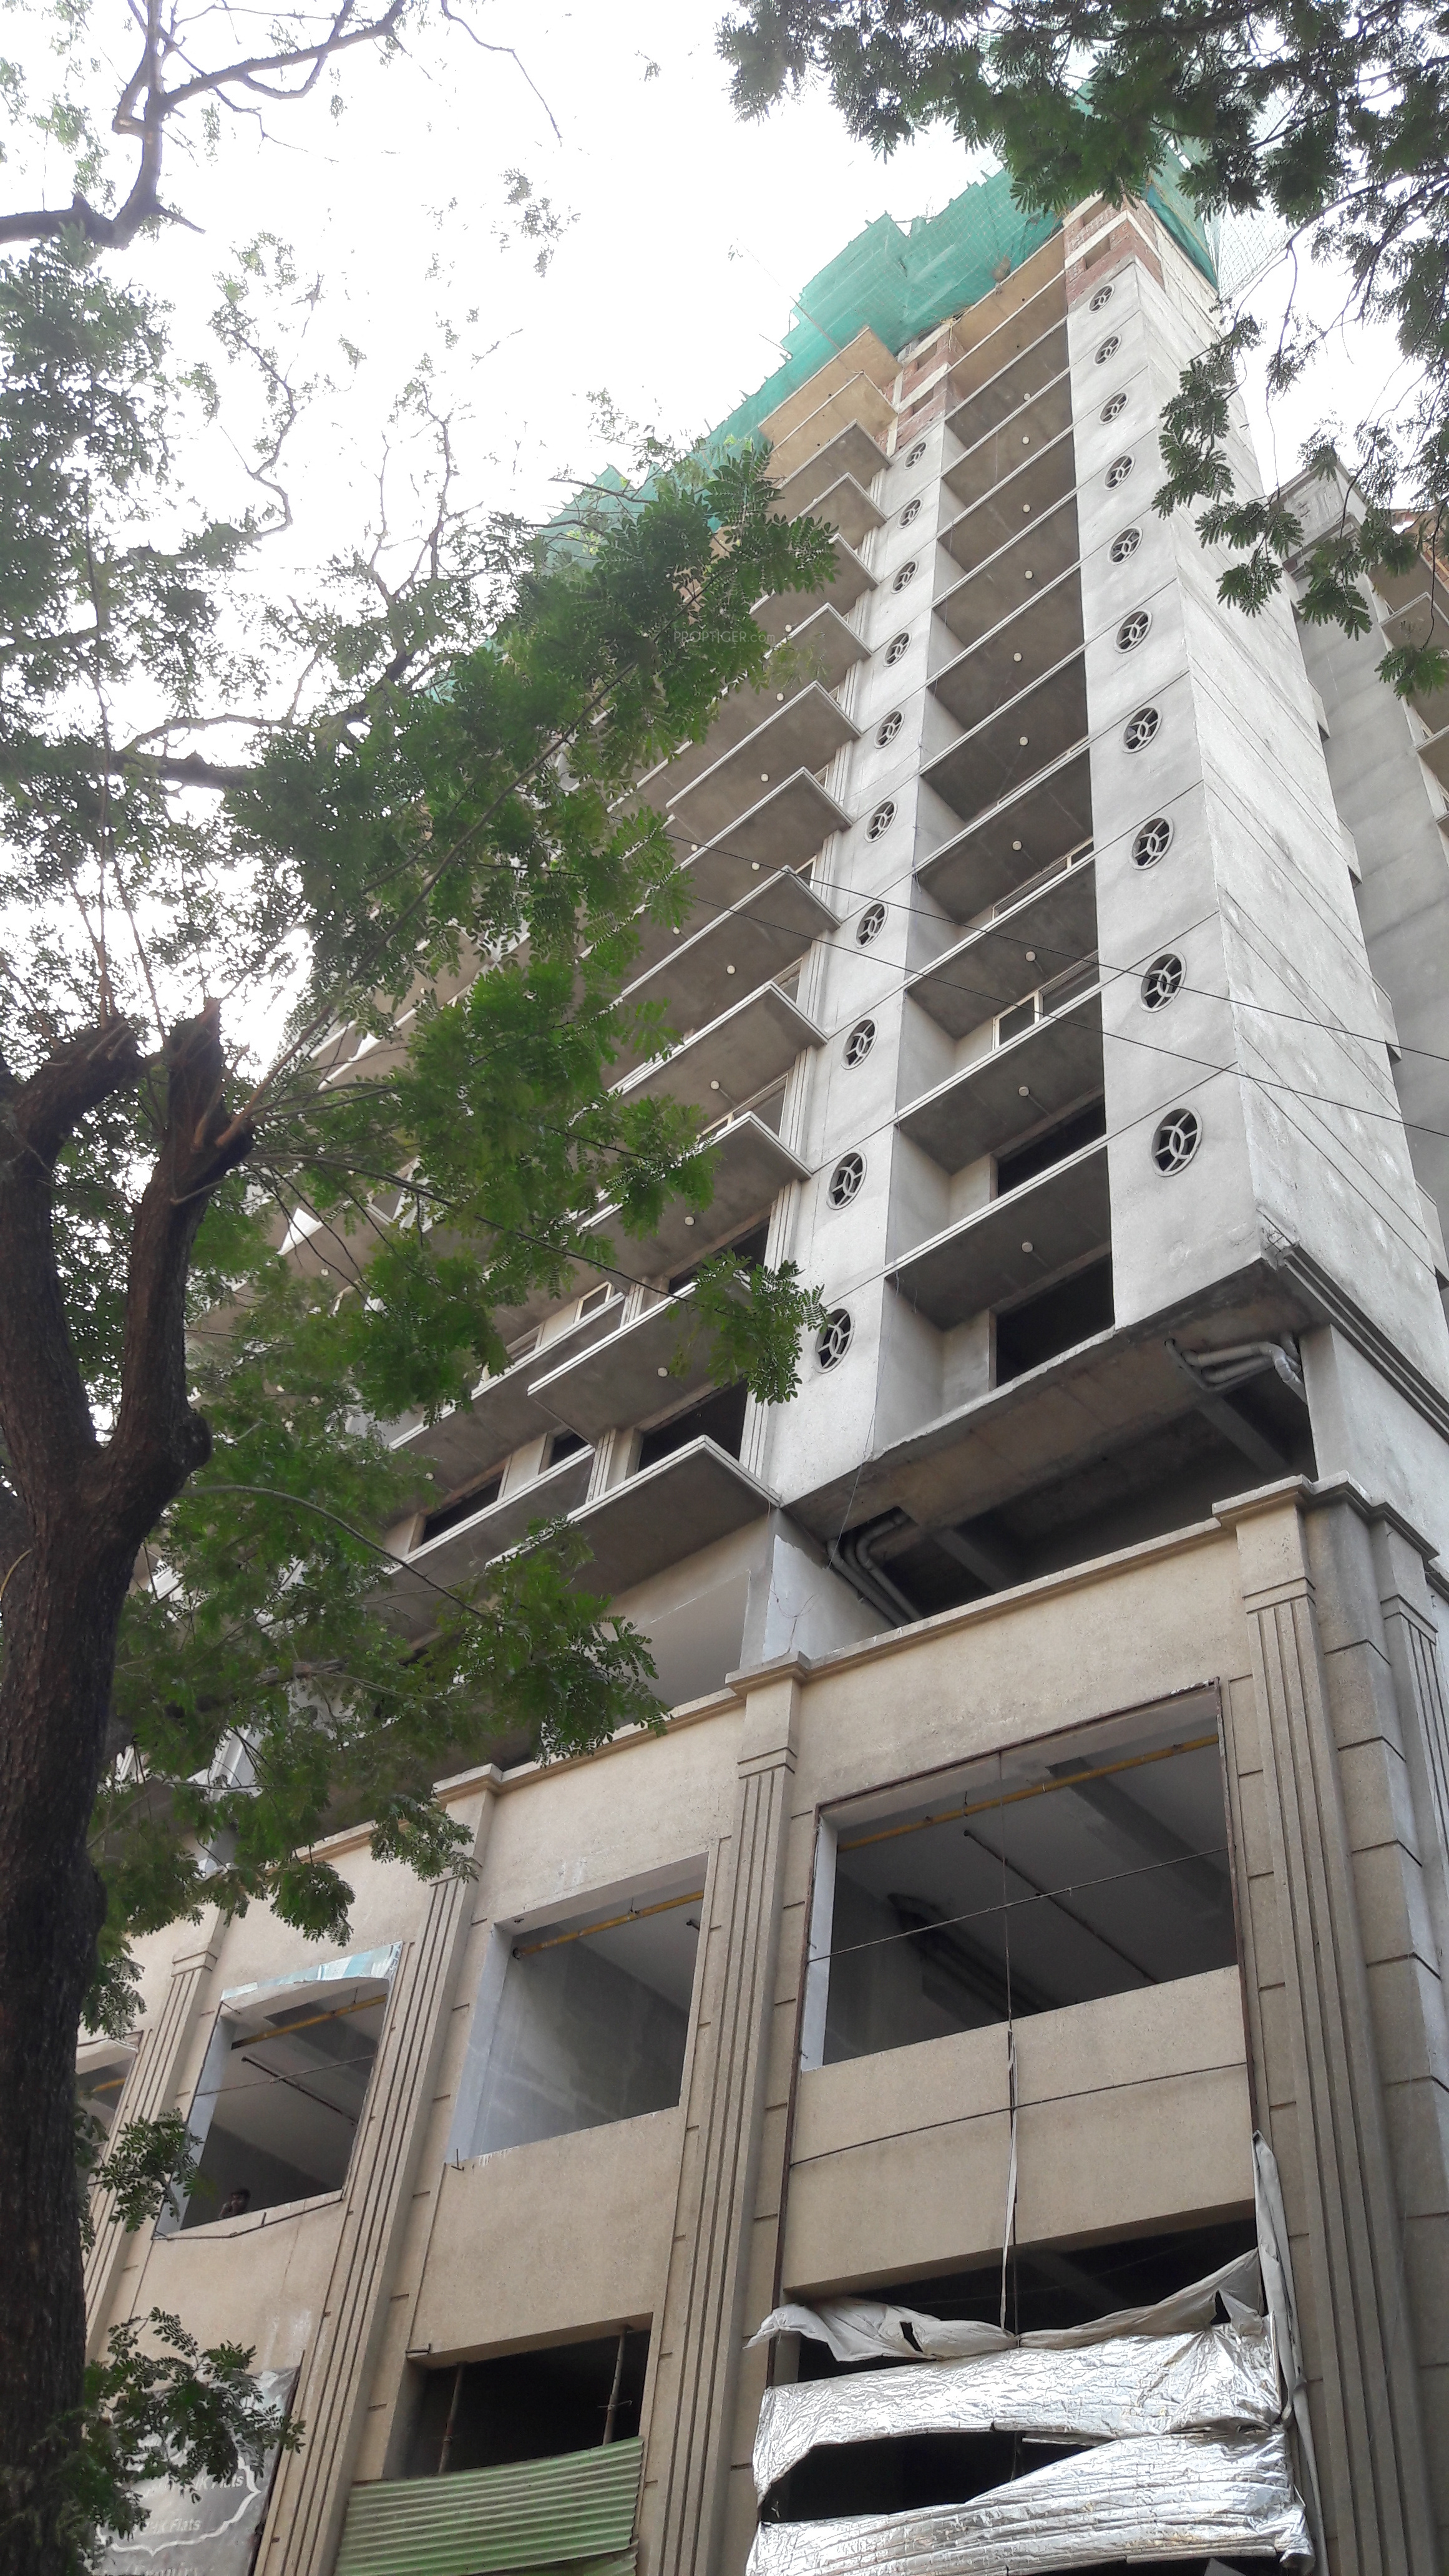 440 sq ft 1 BHK 1T Apartment for Sale in Mumbai Housing and